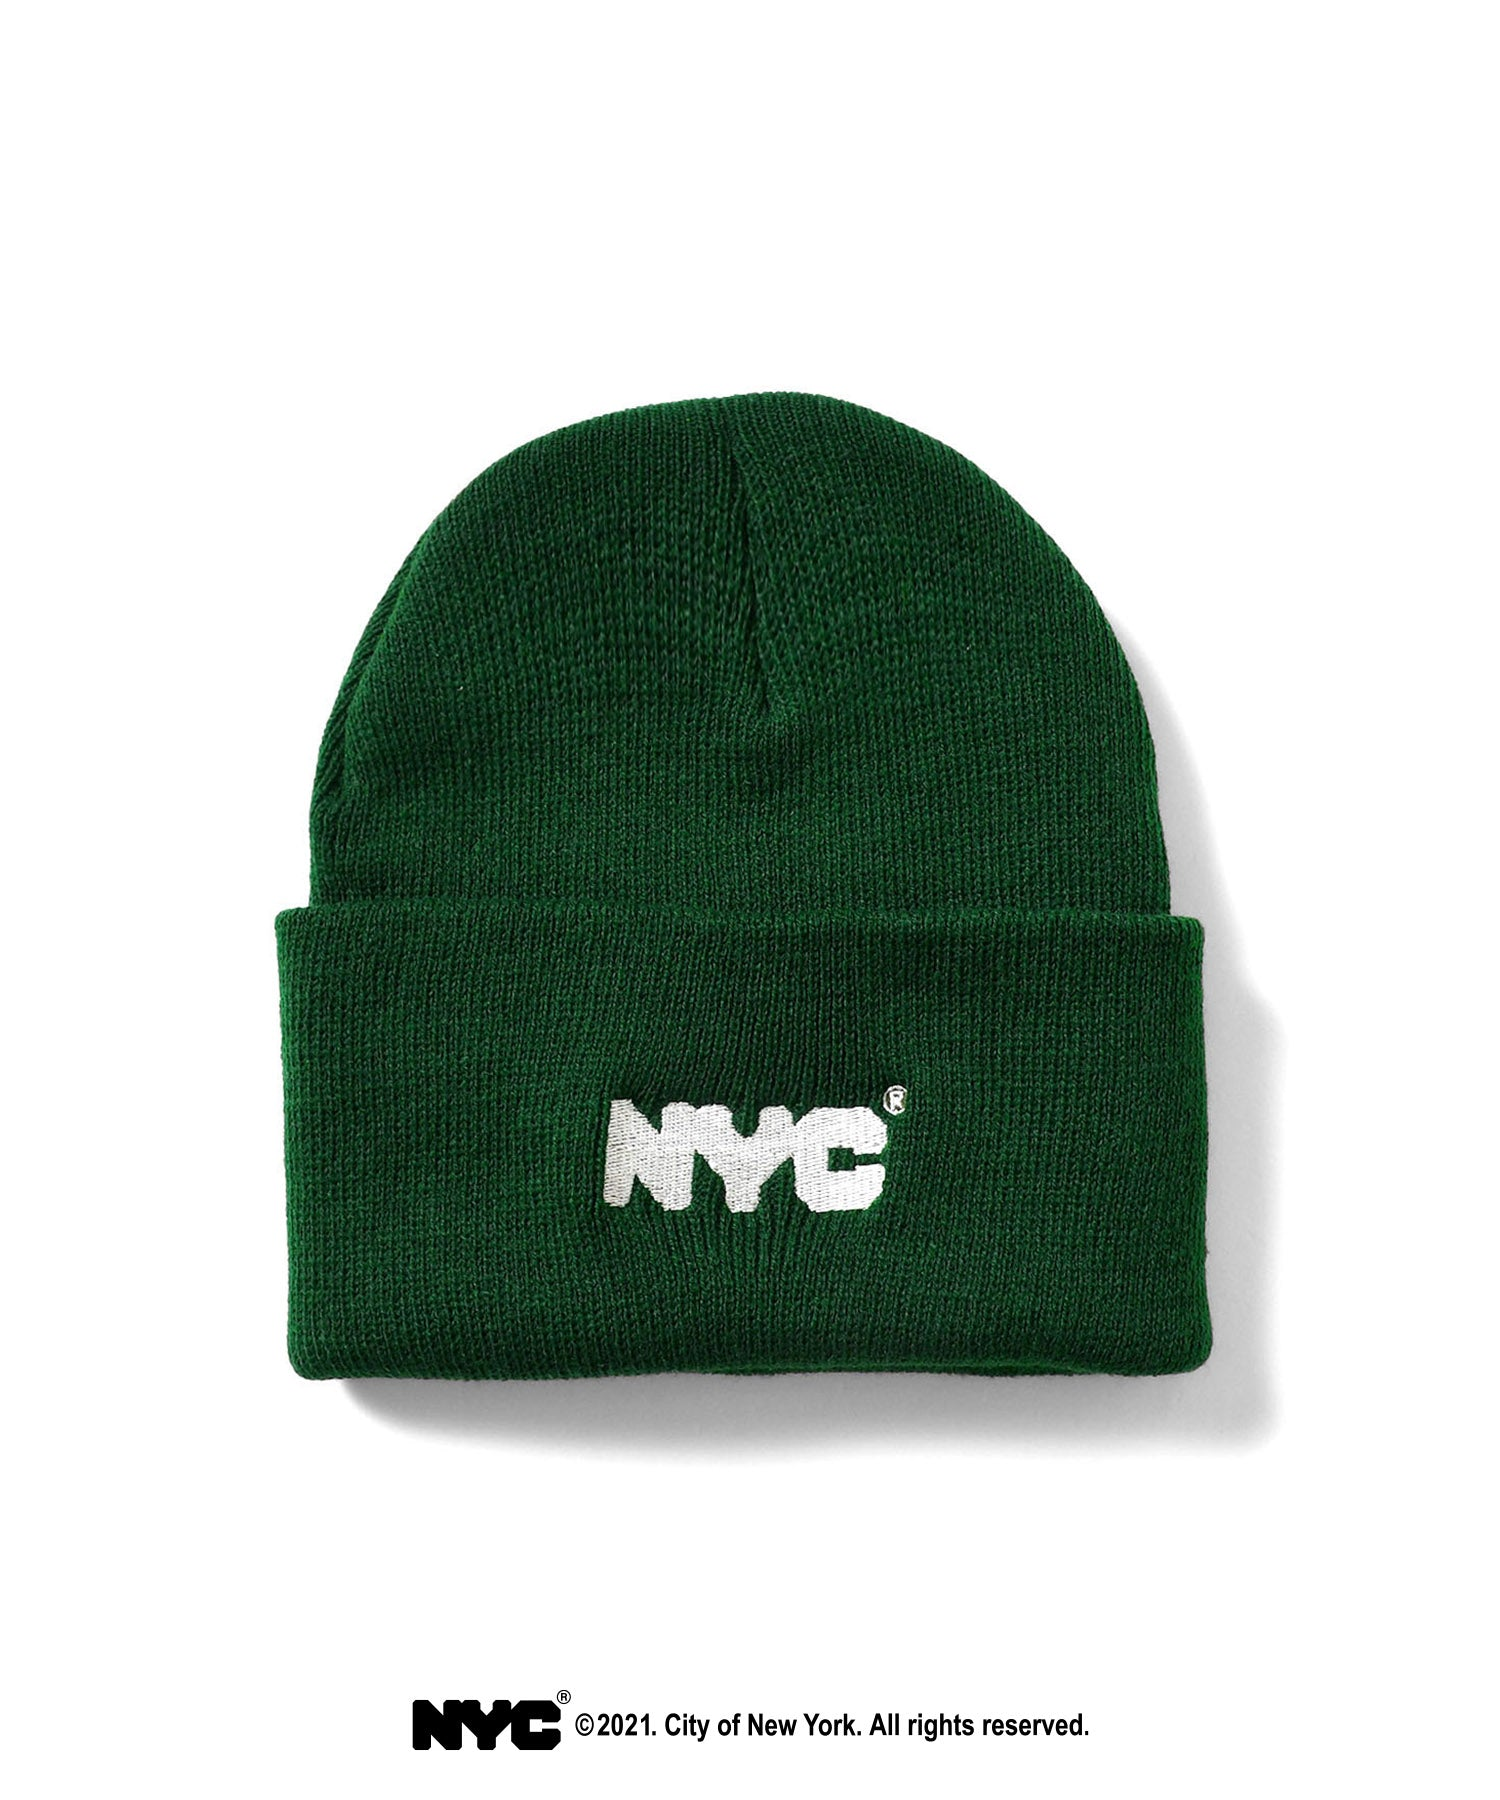 LFYT X DSNY COMMUNITY SERVICES LONG BEANIE LS211404  DARK GREEN